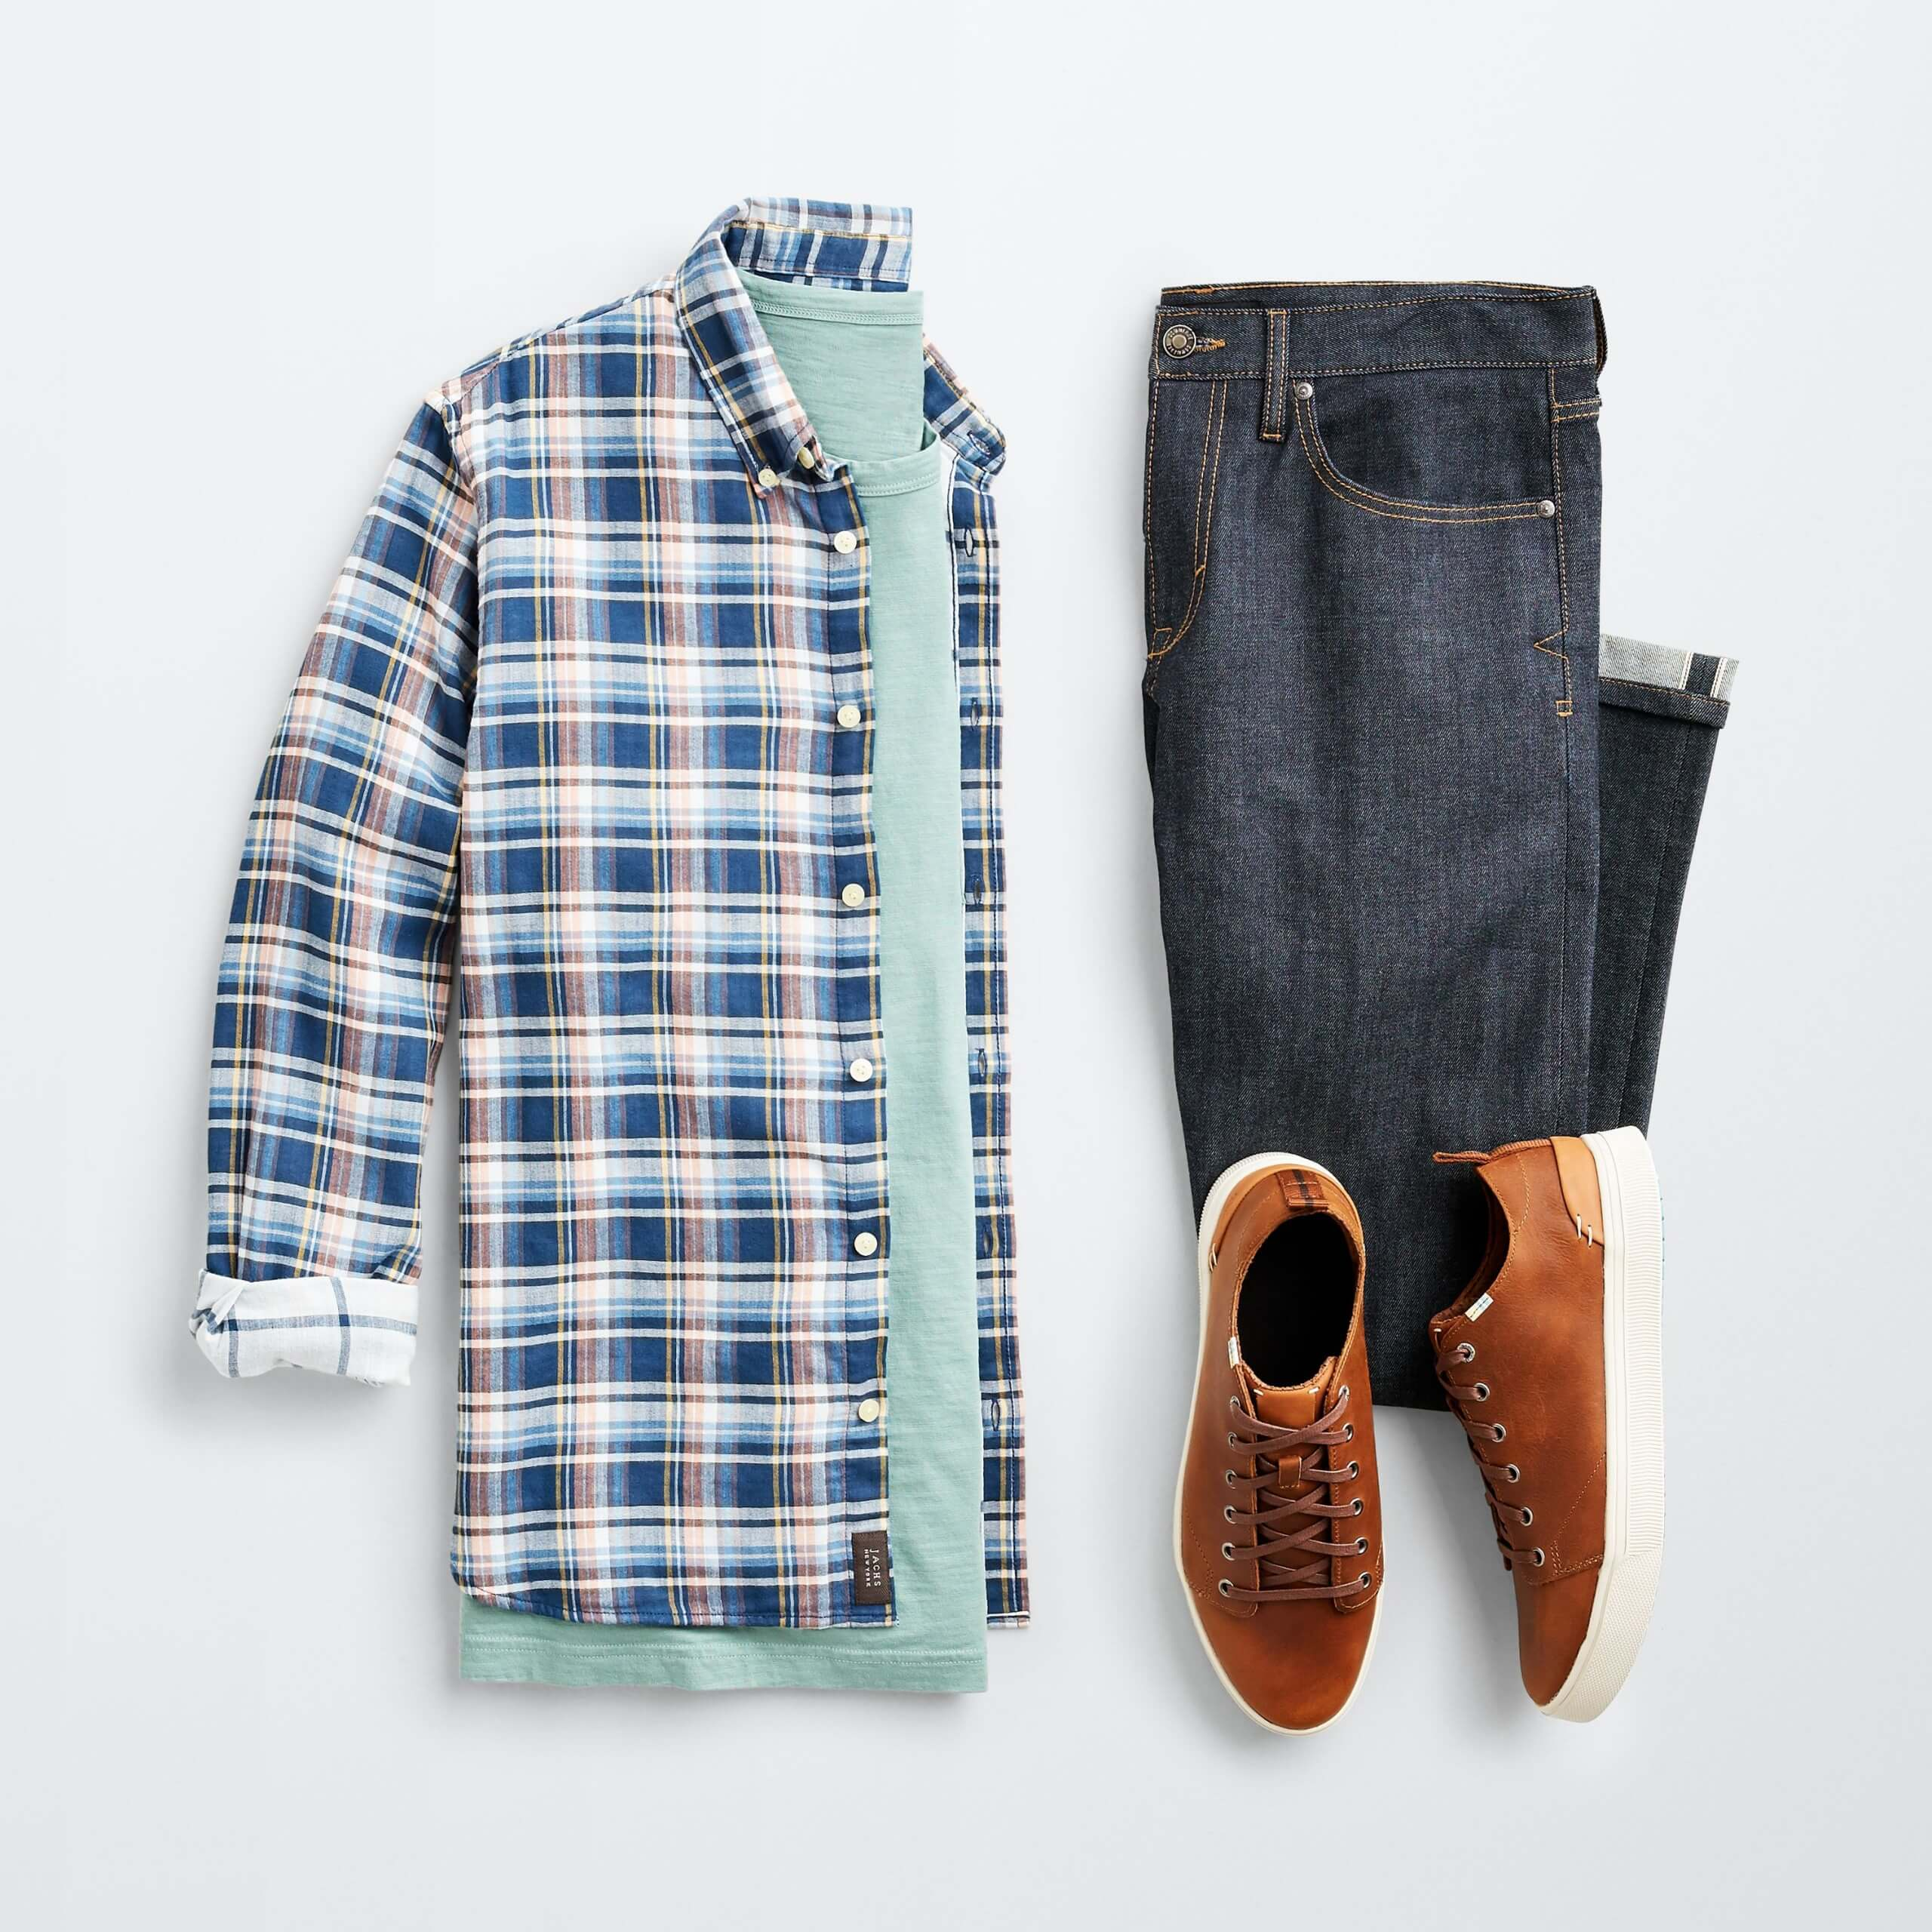 Stitch Fix Men's outfit laydown featuring plaid shacket over mint green t-shirt, dark blue jeans and brown sneakers.